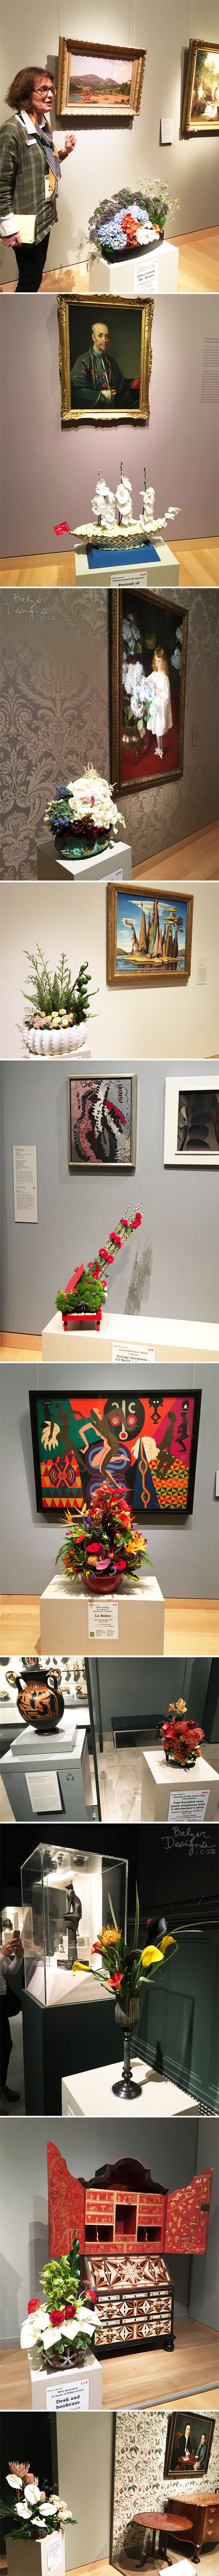 From the Balzer Designs Blog: MFA Boston Art in Bloom 2018